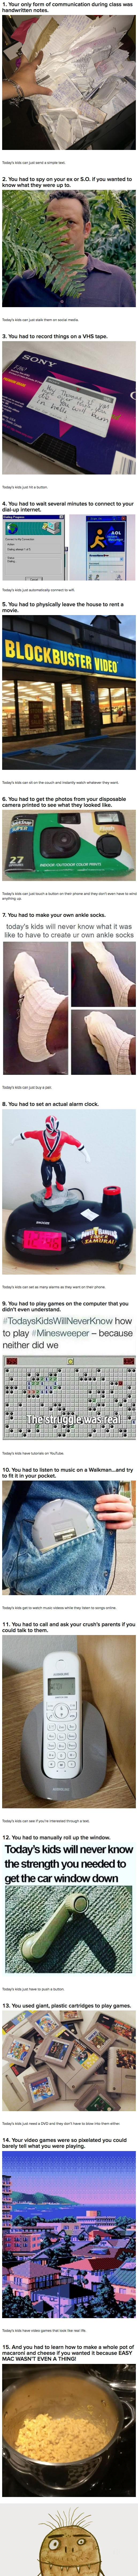 15 Photos From The '90s That Prove Kids Today Will Never Understand The Struggle